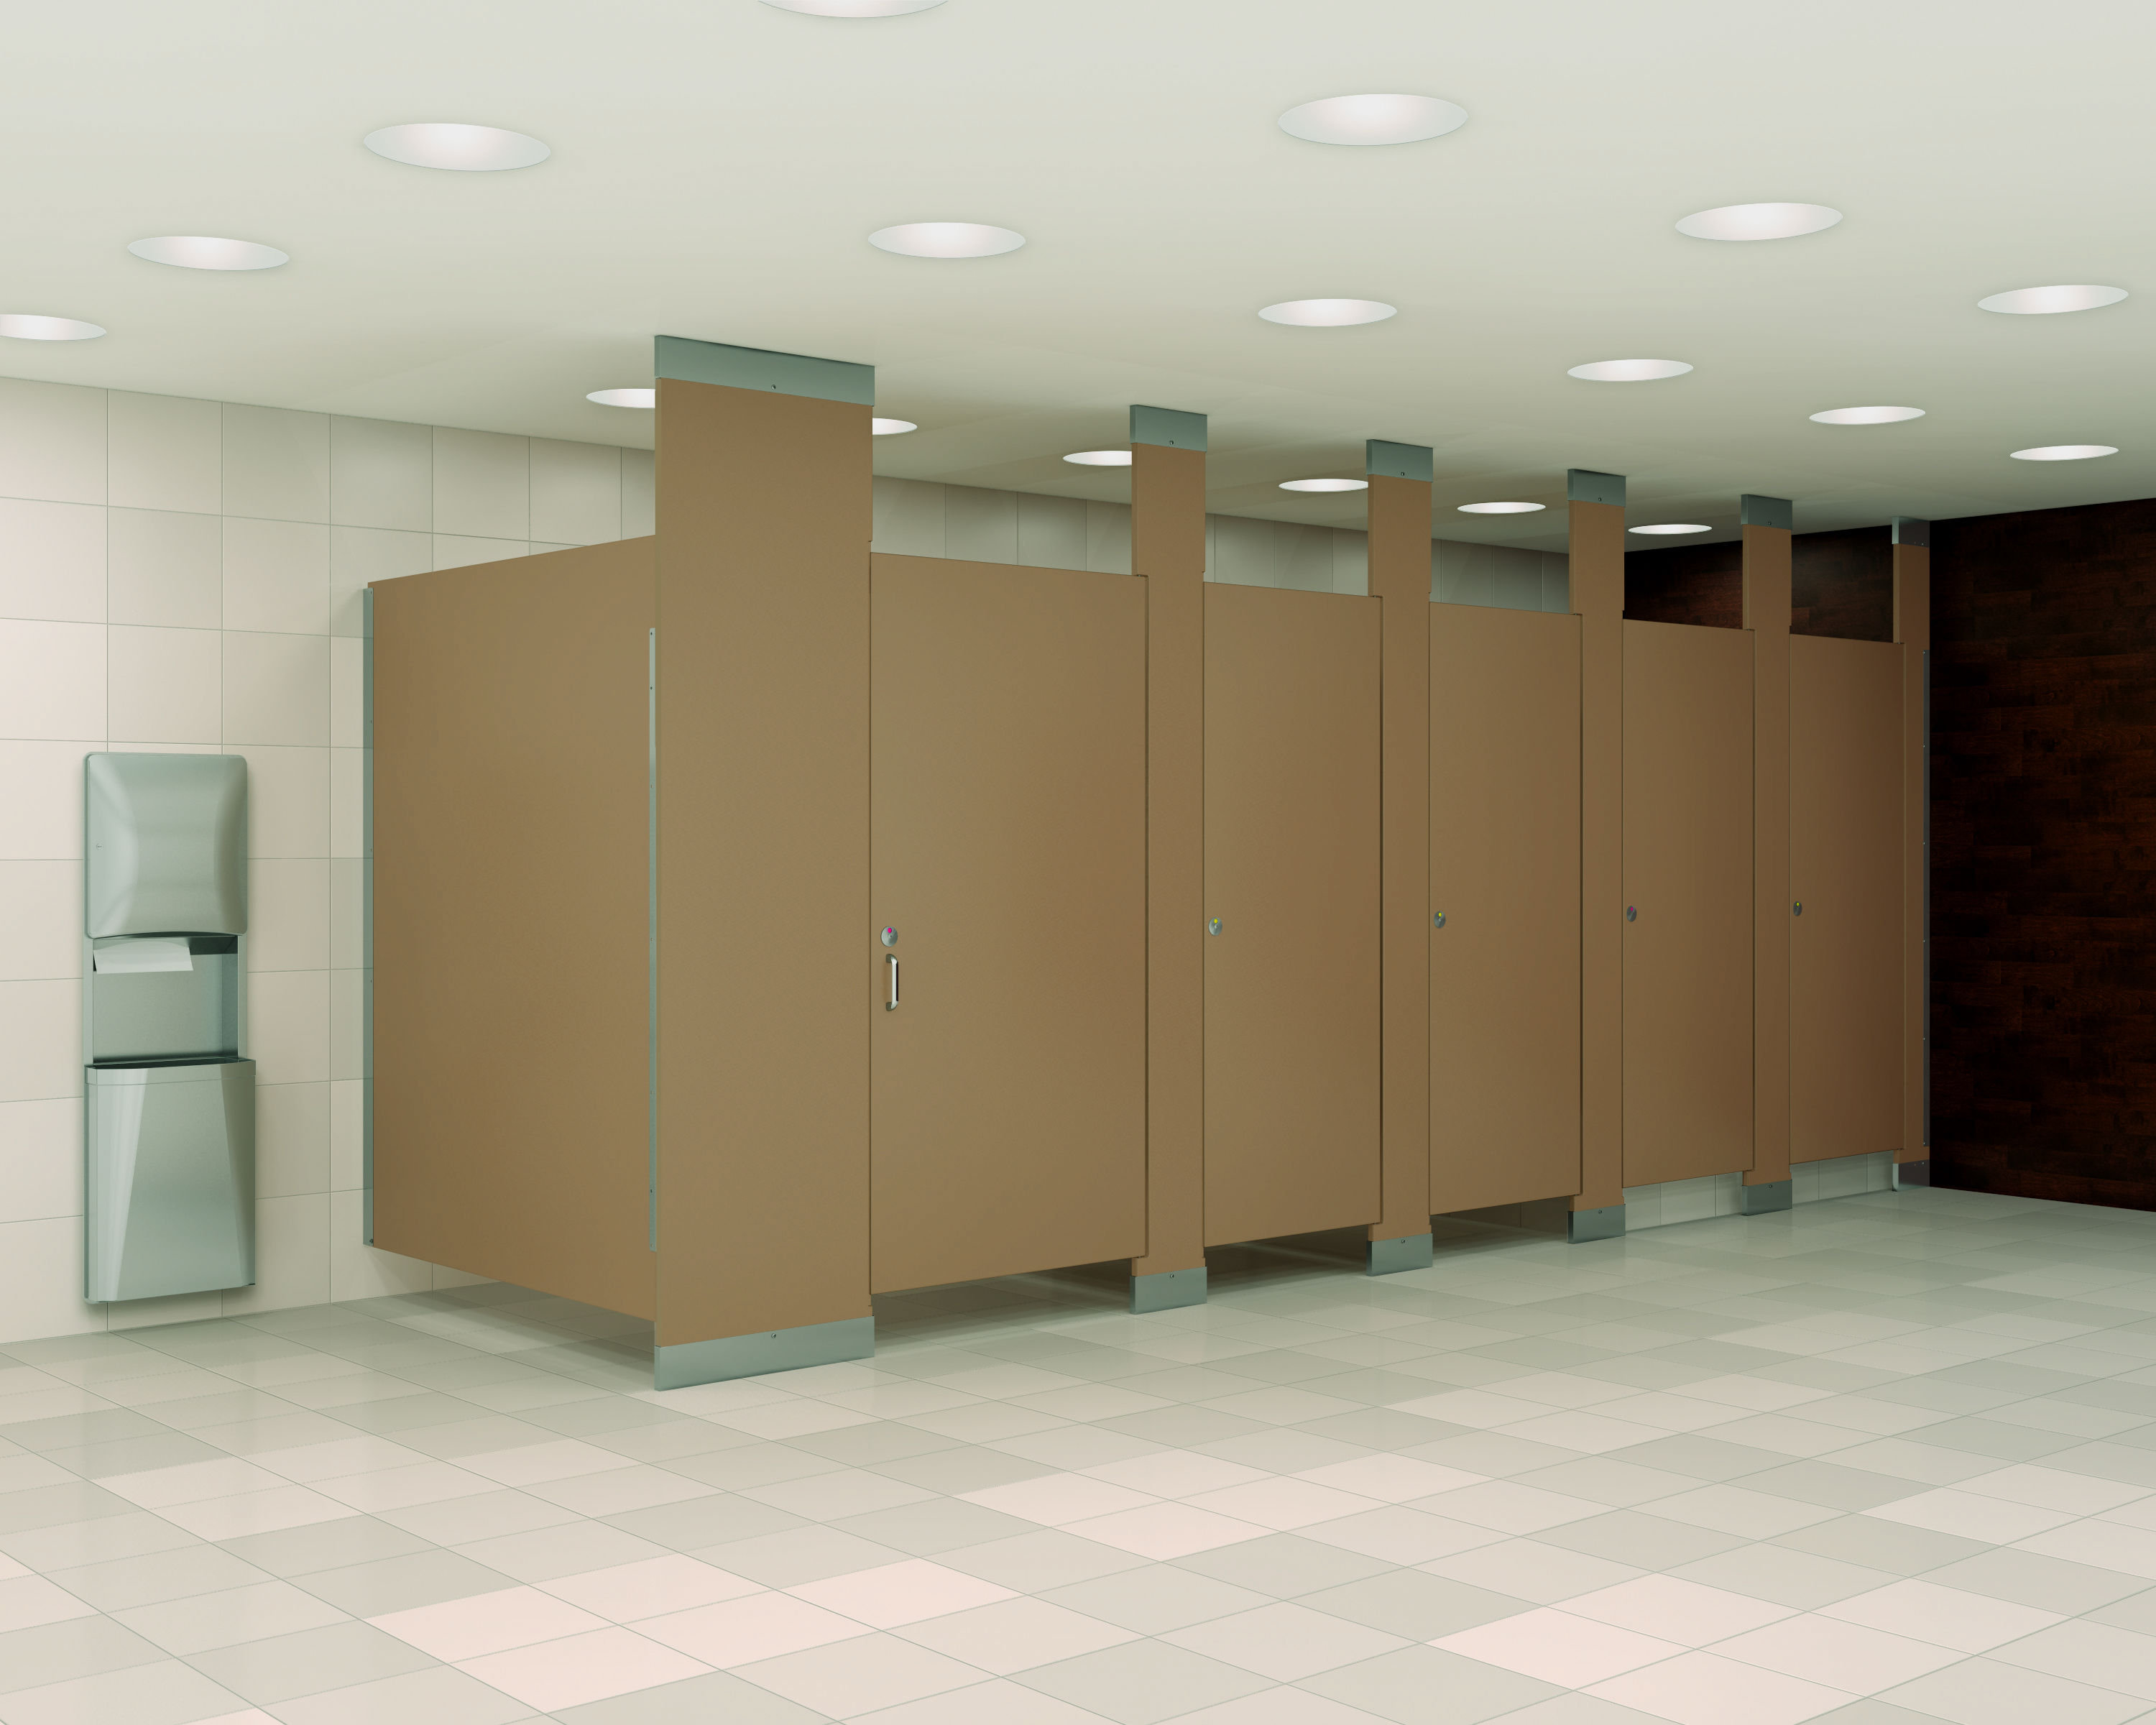 Powder room privacy stalls partitions sales and design for European bathroom stalls